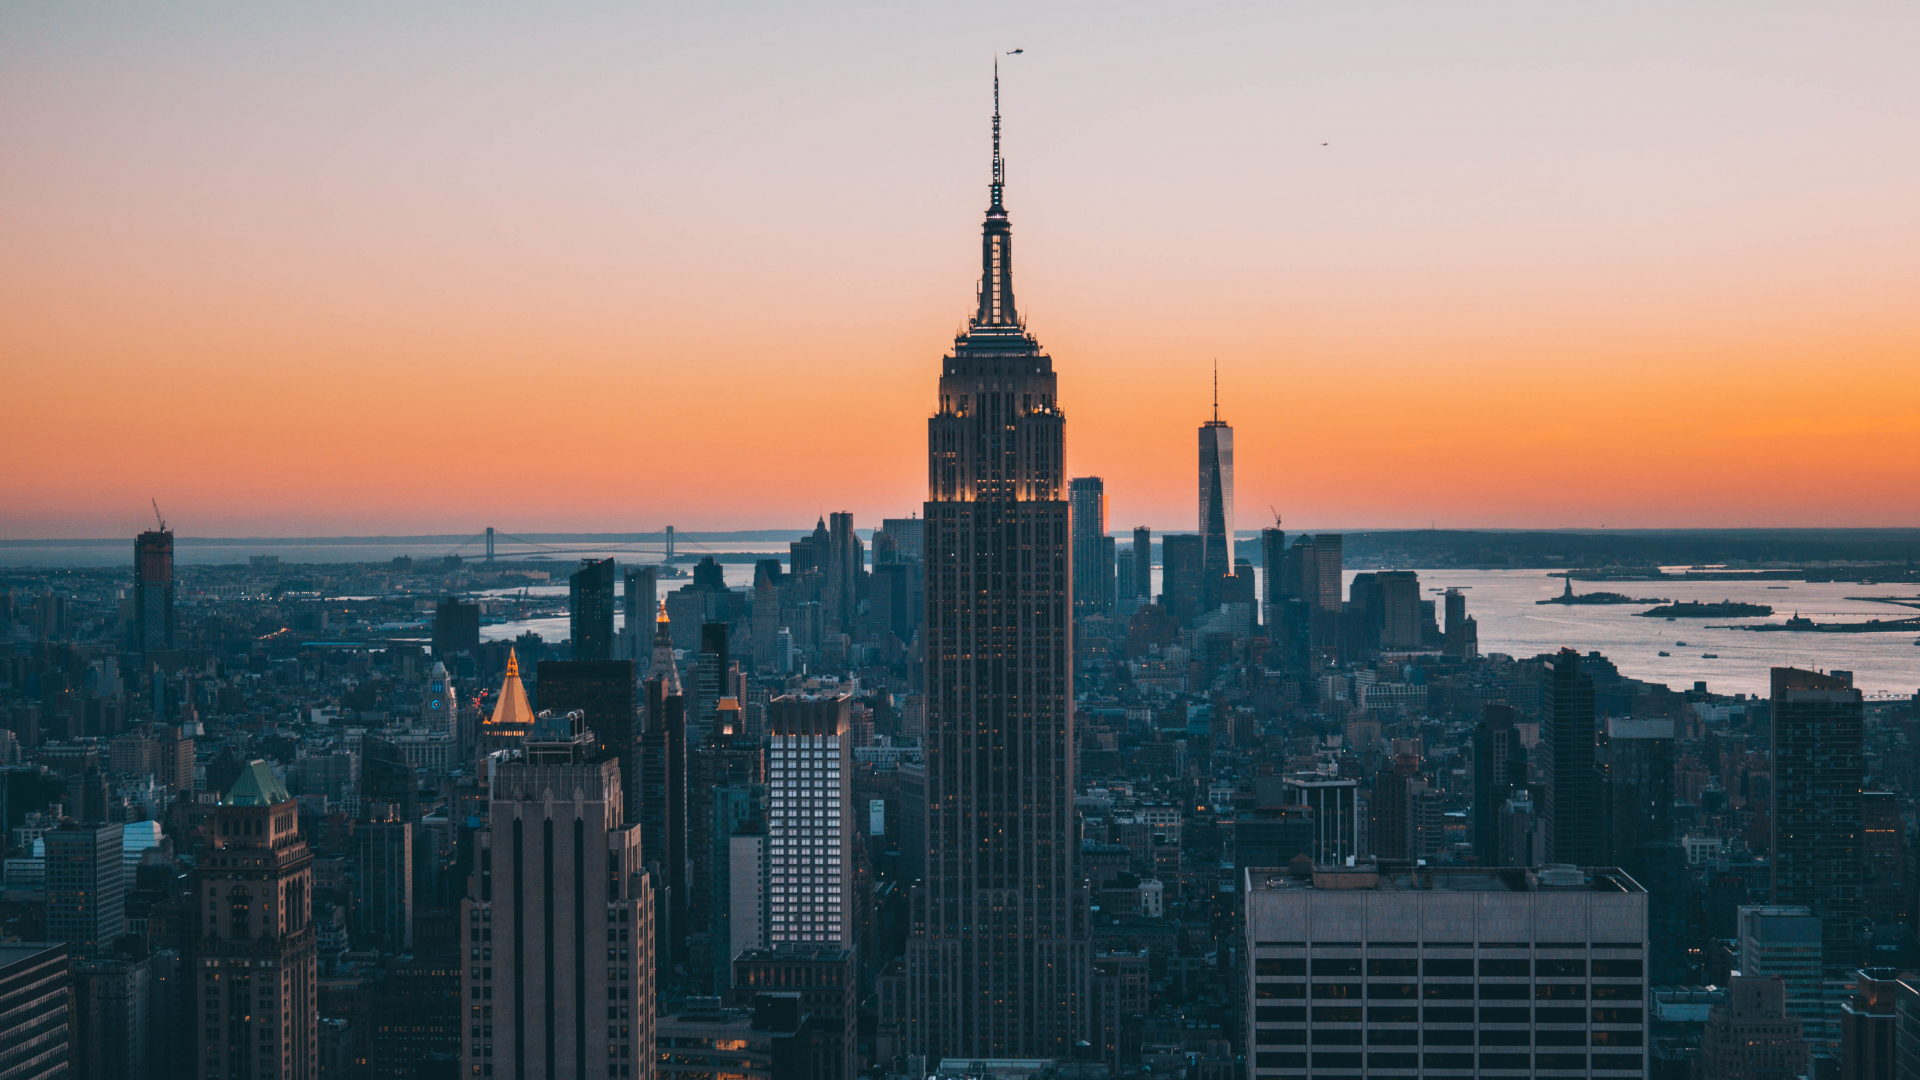 Wallpaper 4k Samsung Galaxy S8 Girls Download 1920x1080 Wallpaper Empire State Building